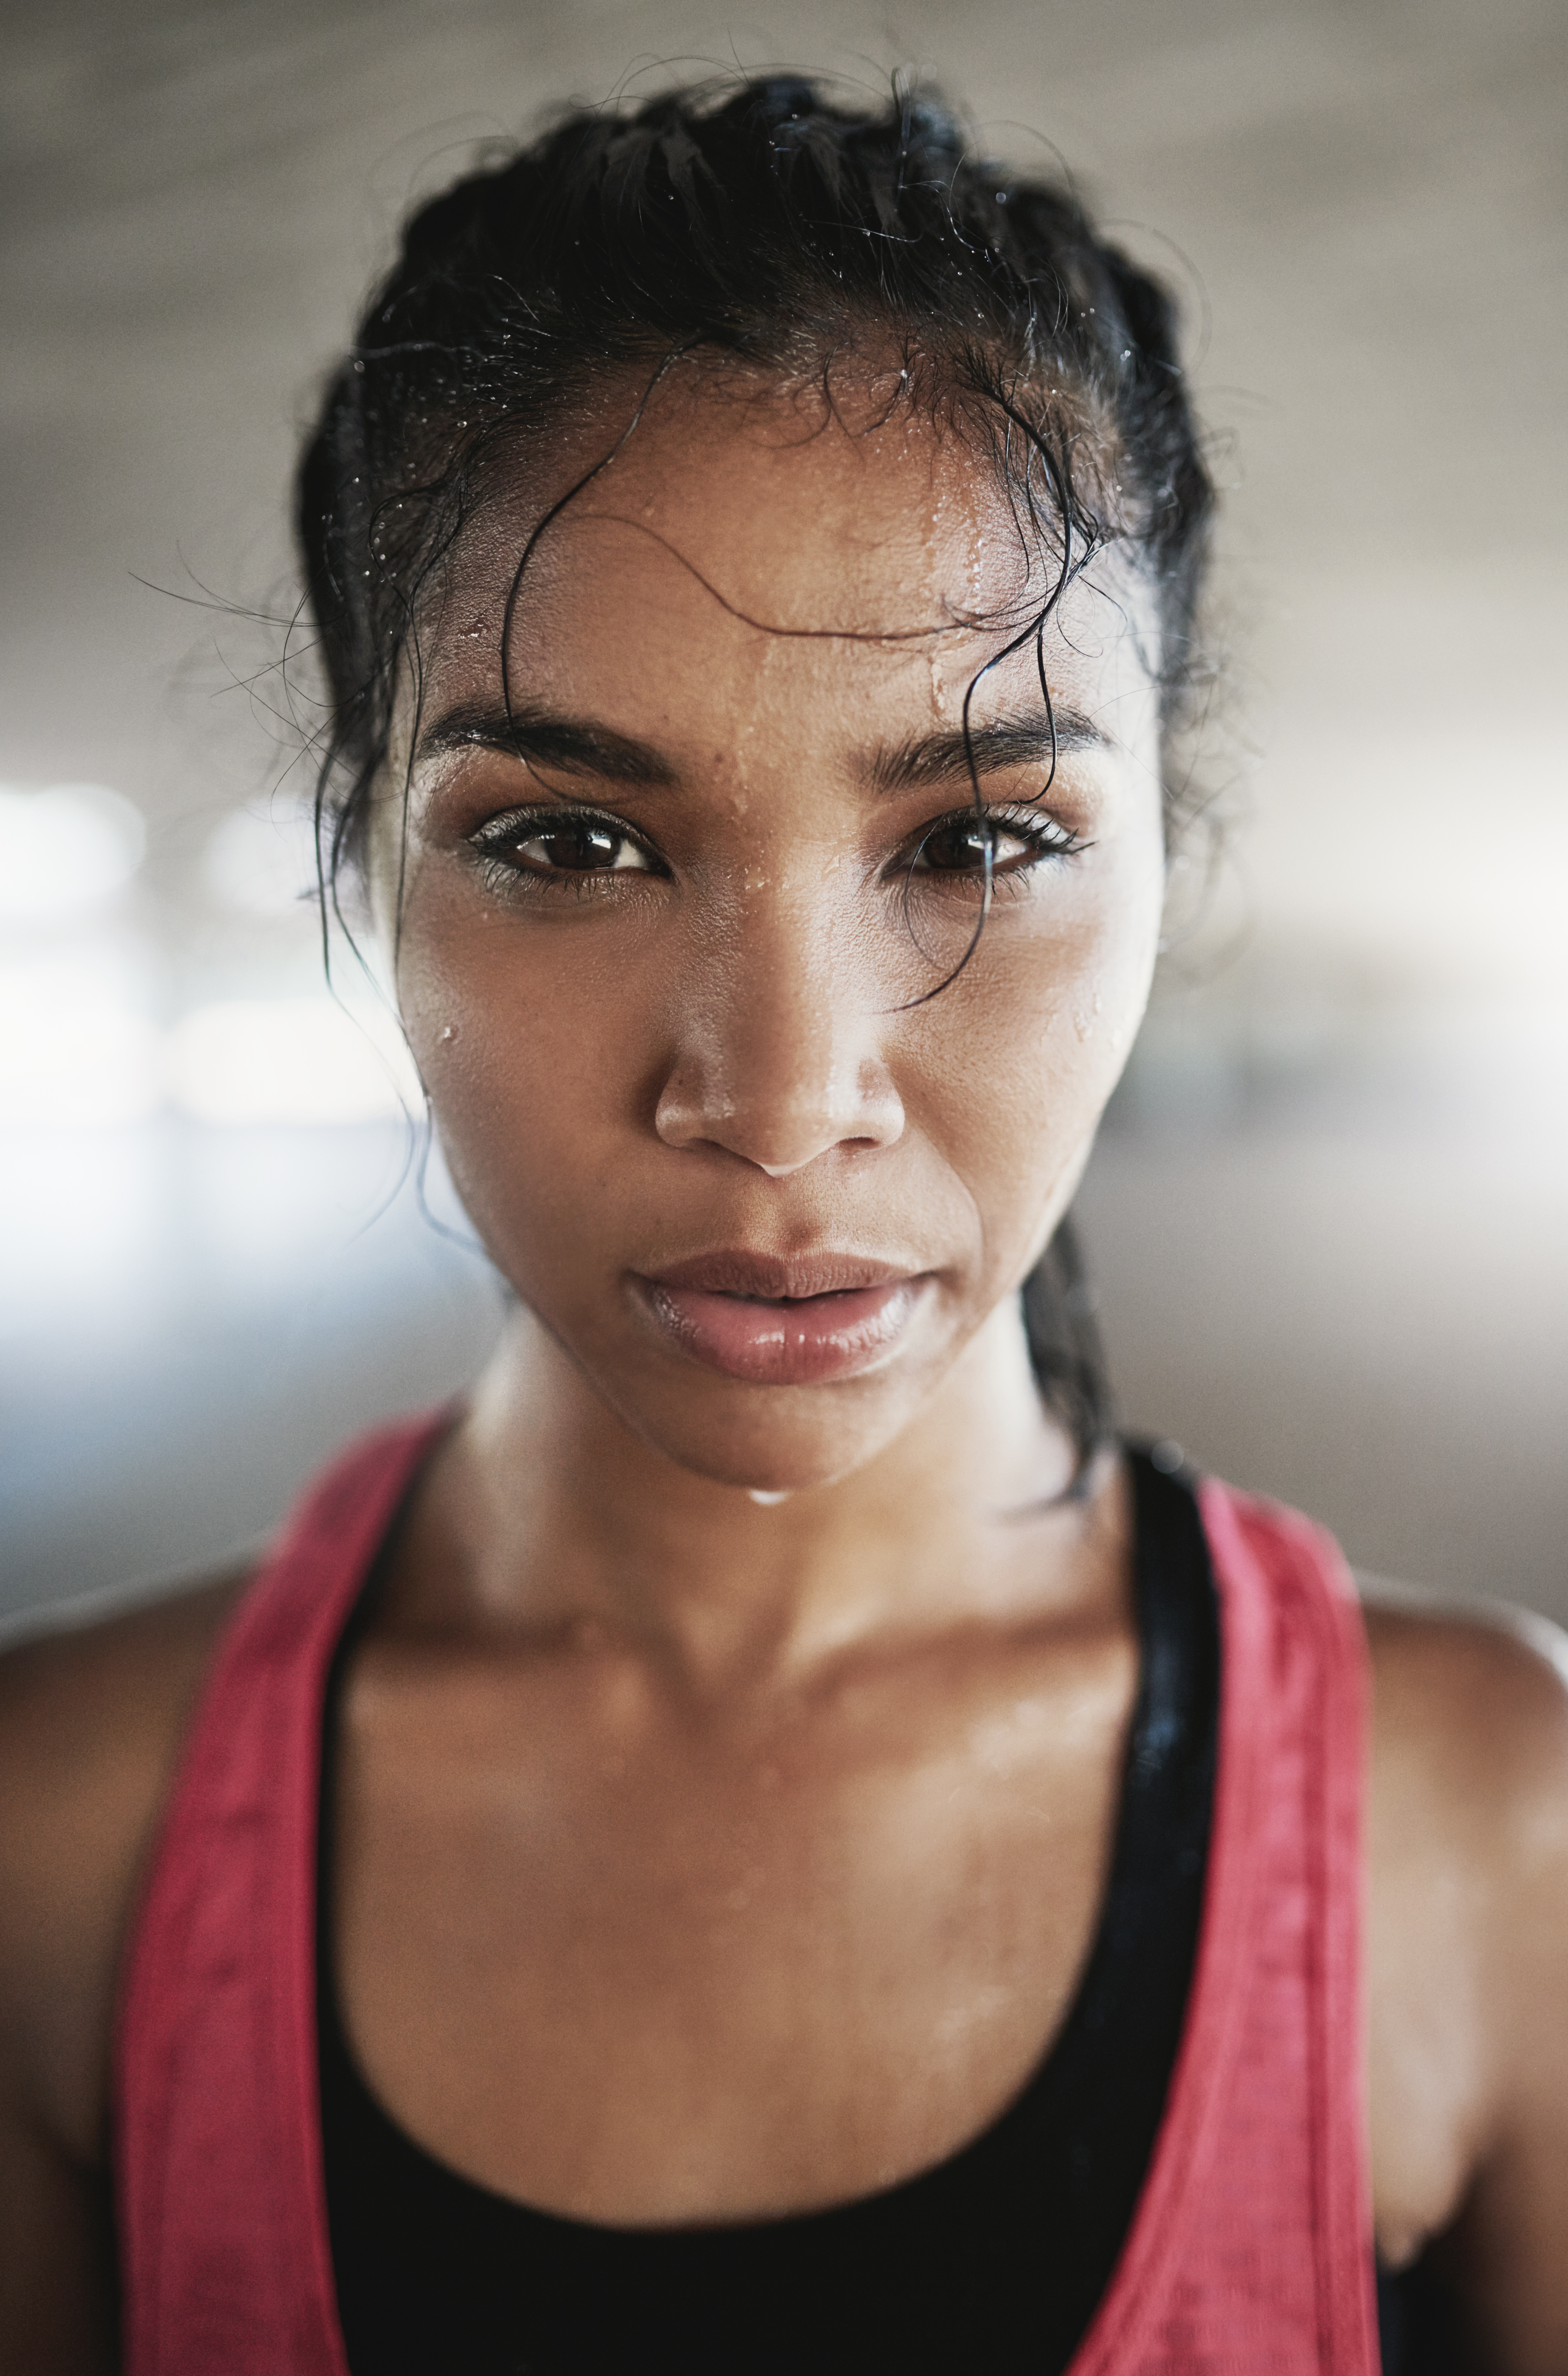 Woman Sweating during Workout